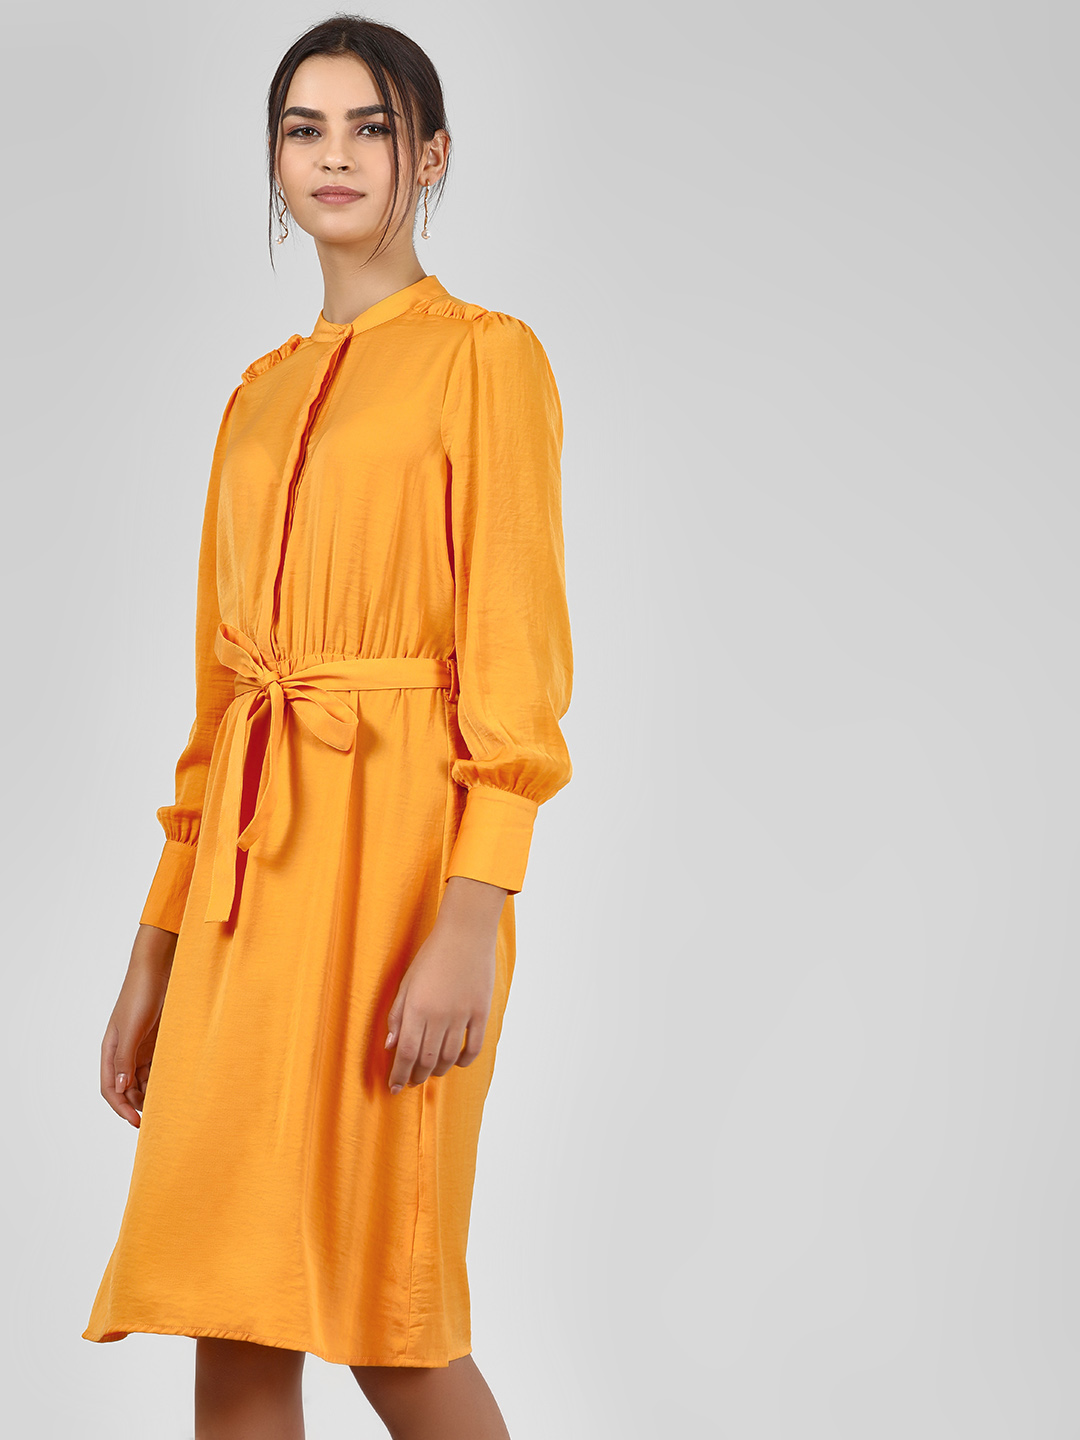 Vero Moda Yellow Tie Front Midi Shirt Dress 1